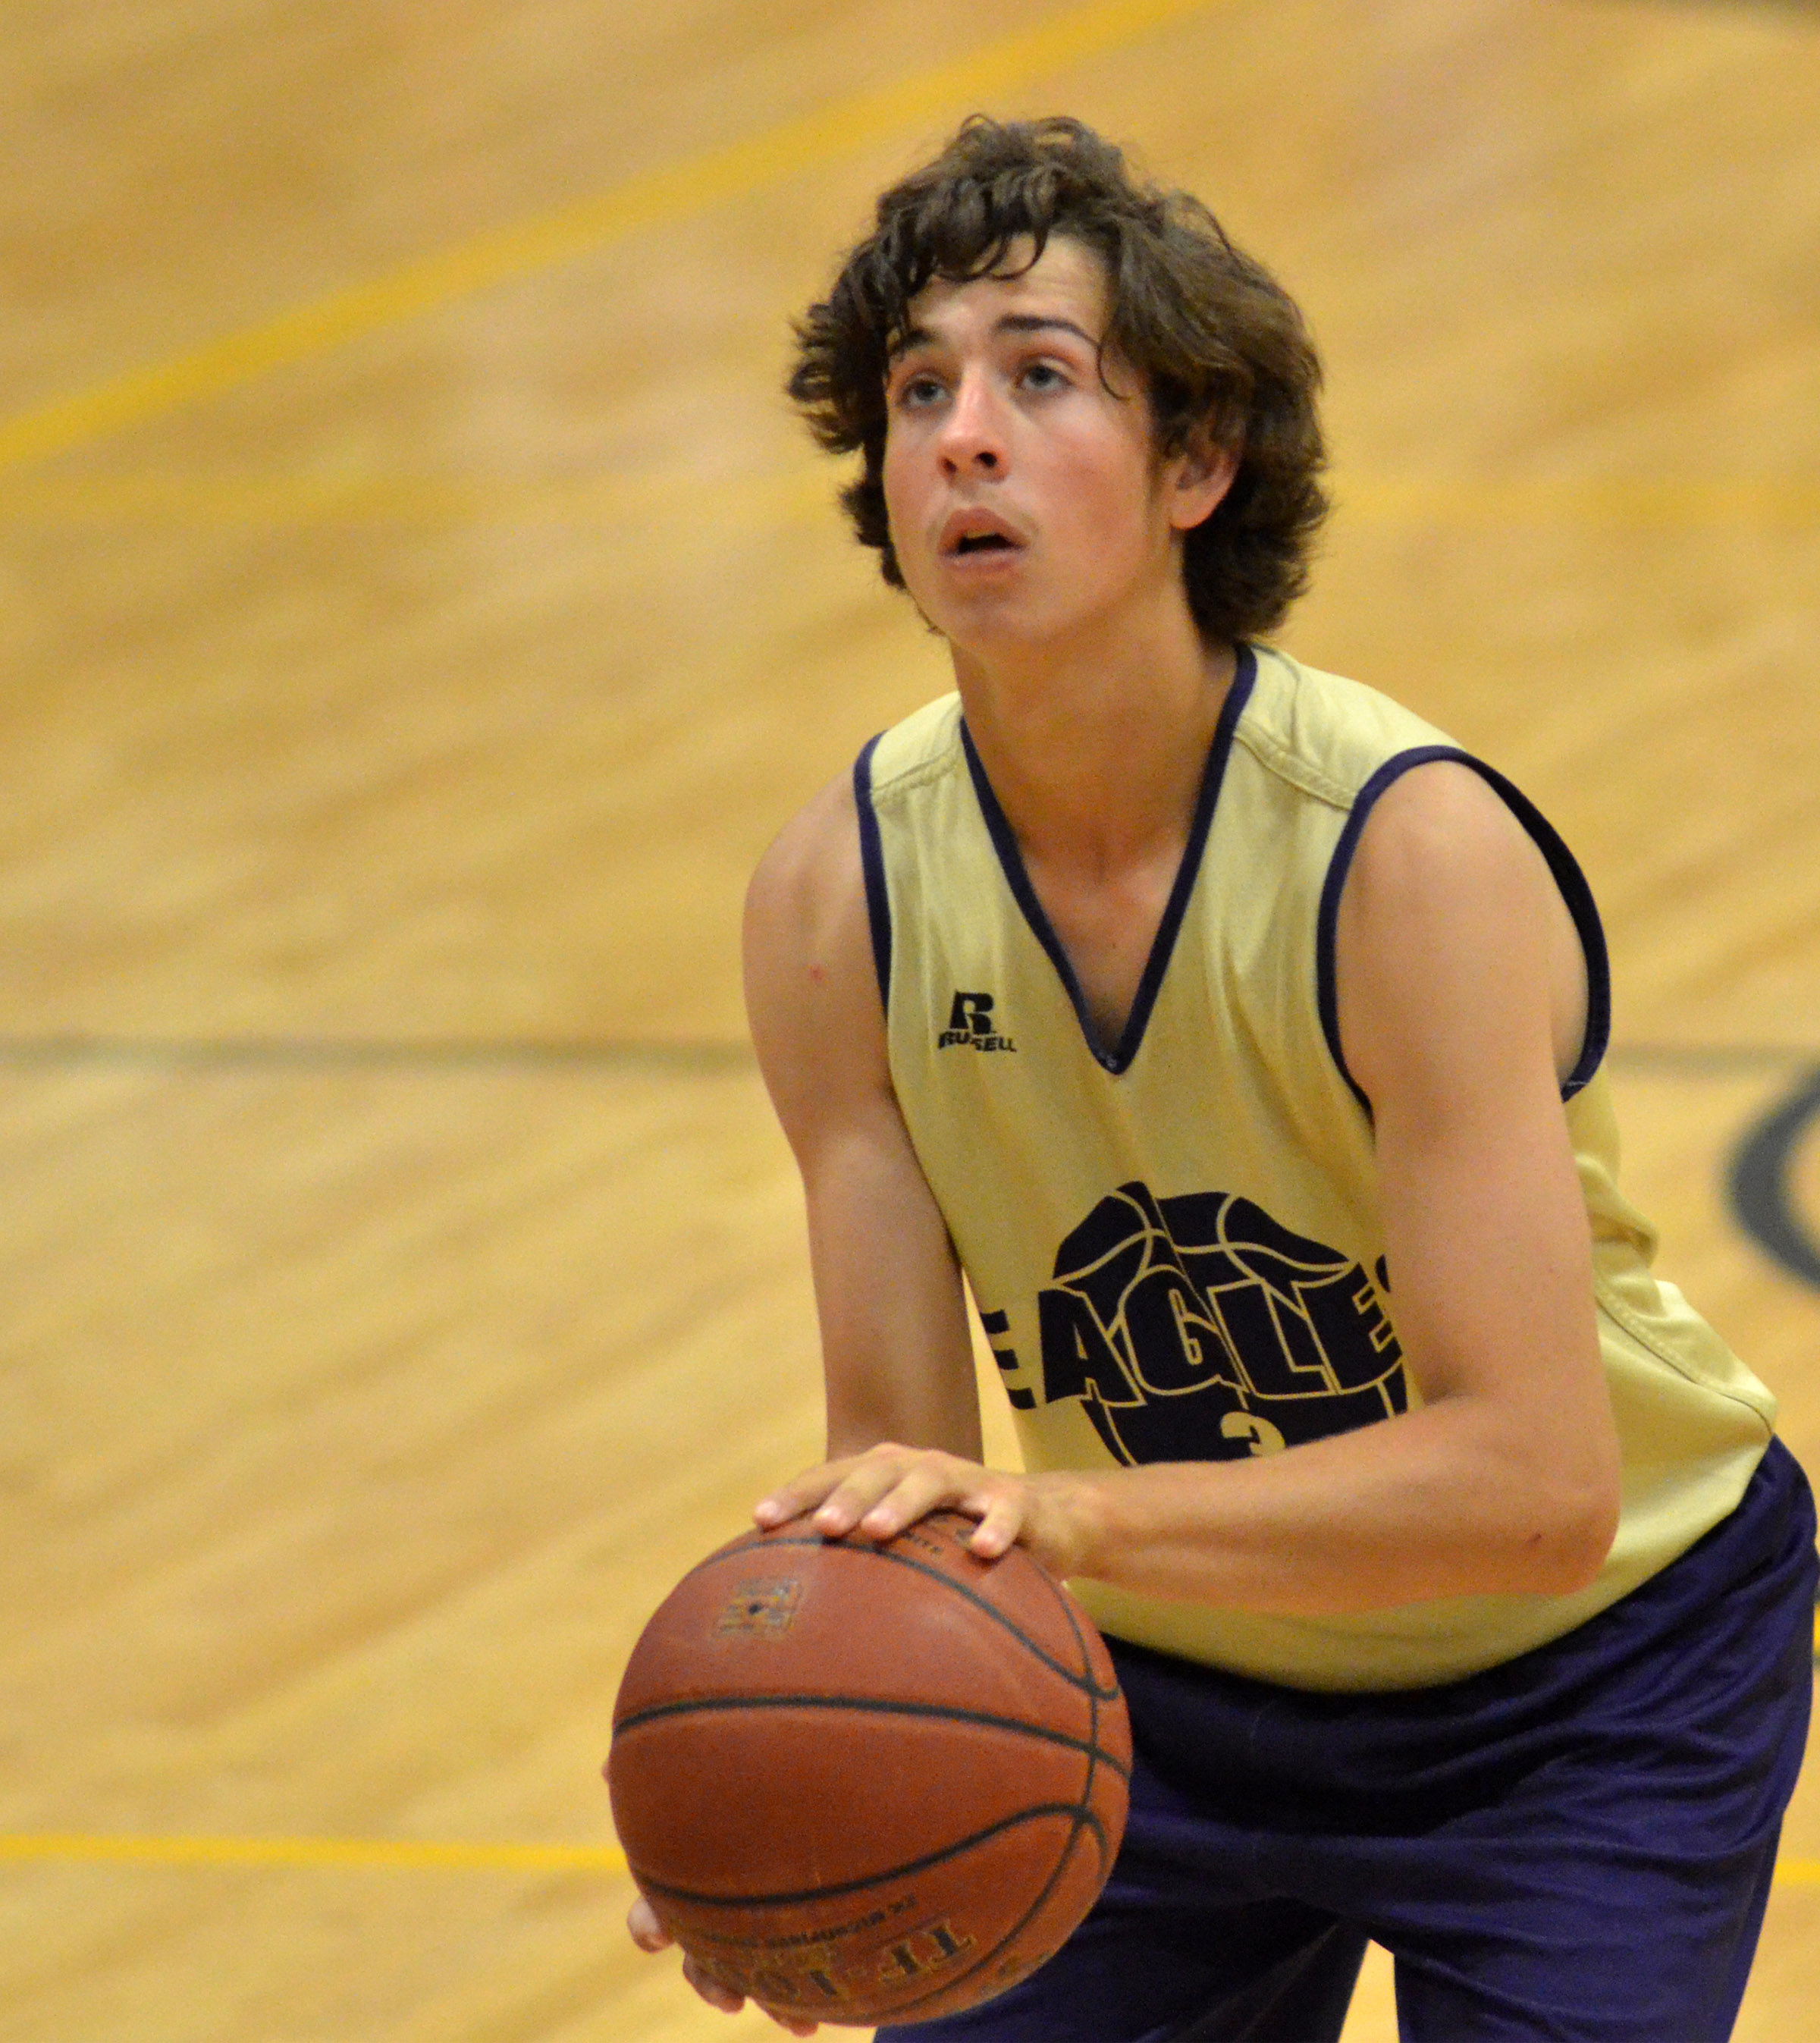 CHS freshman John Orberson shoots the ball.